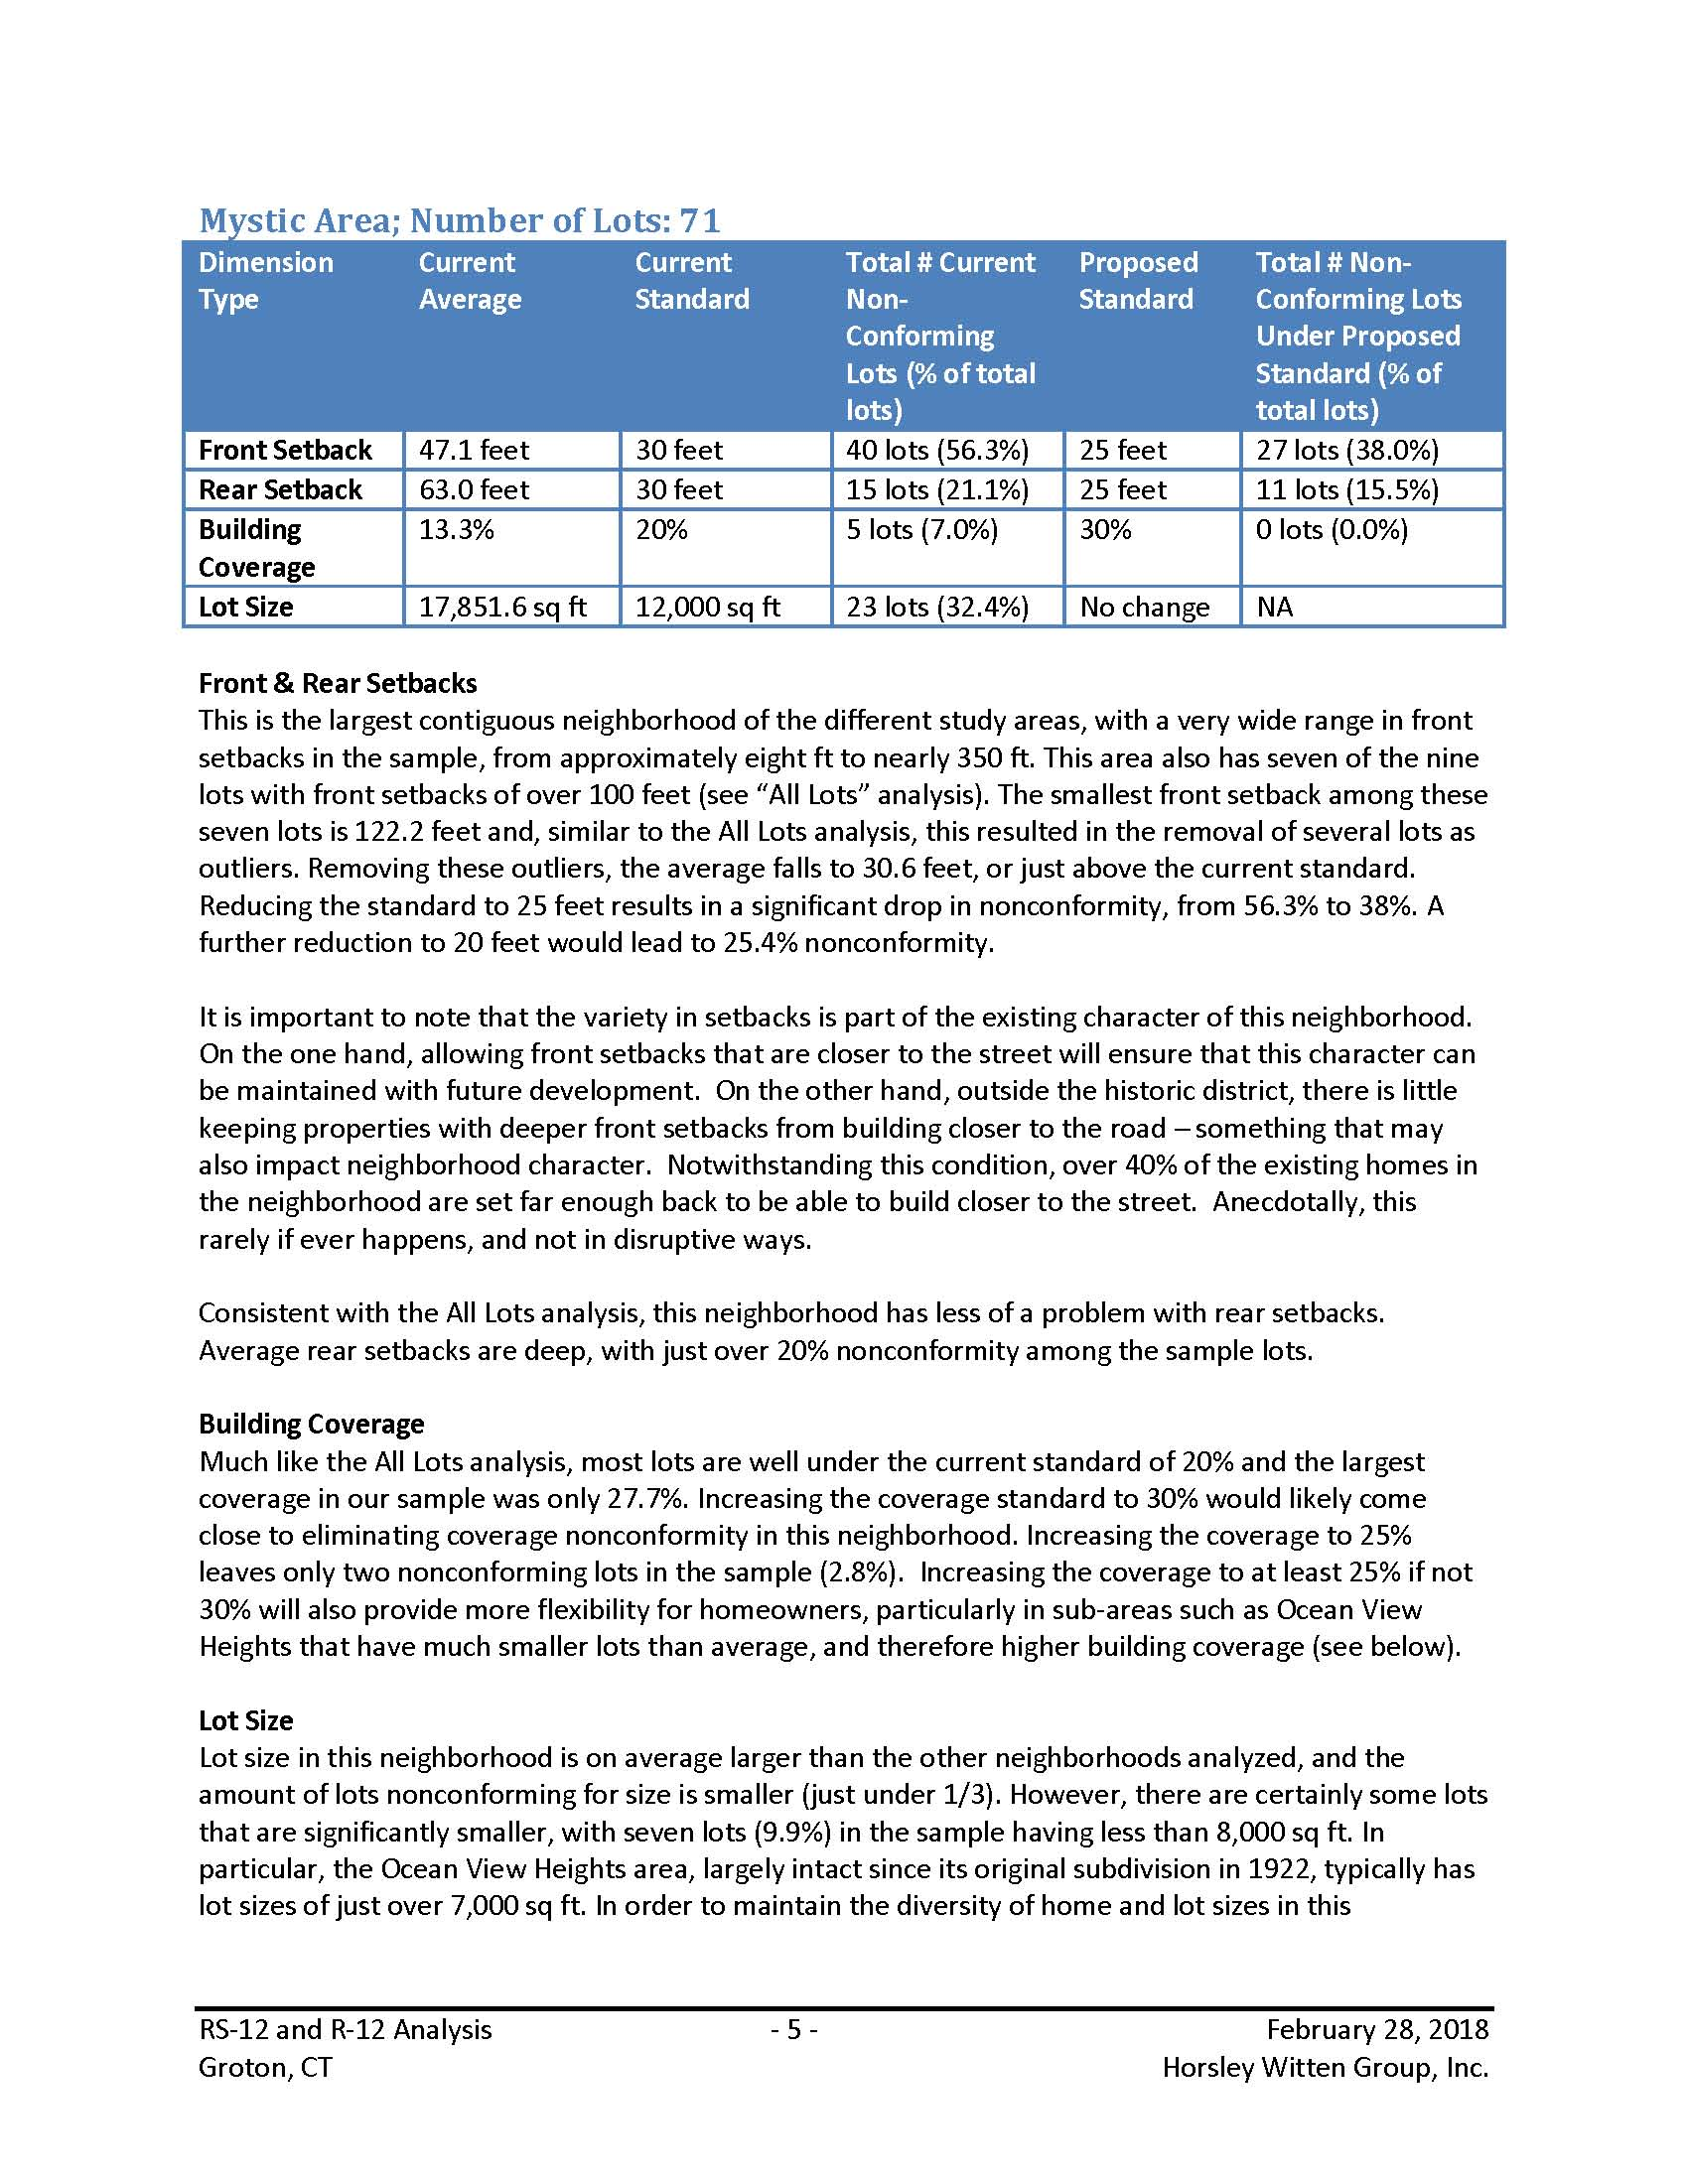 180228_RS12 and R12 Analysis Update_Memo_16156_Page_05.jpg